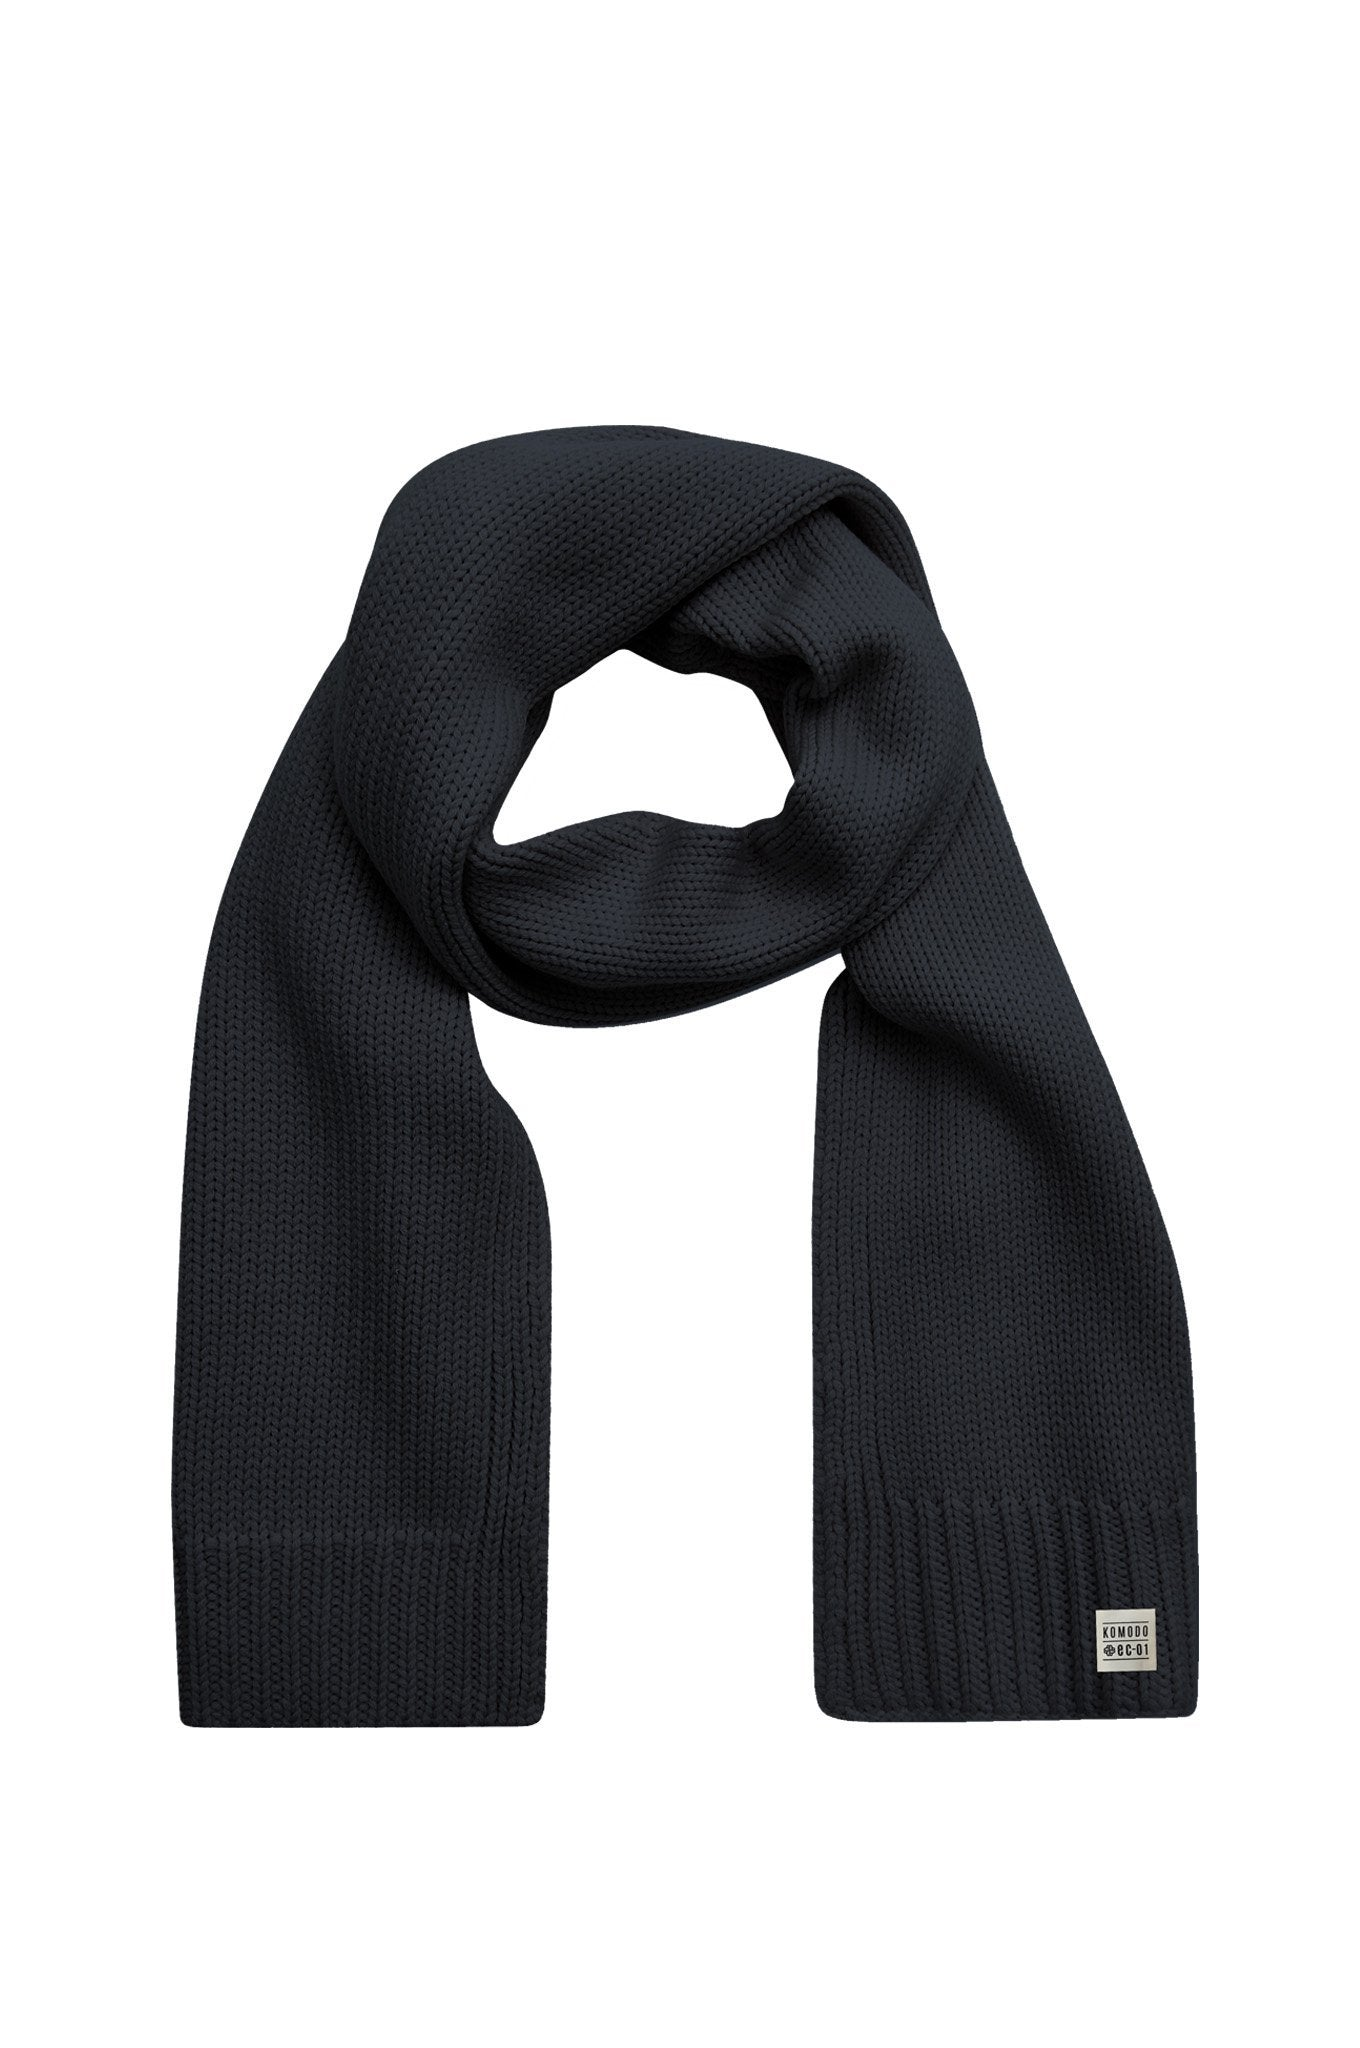 RIM Merino Wool Scarf Black - Komodo Fashion